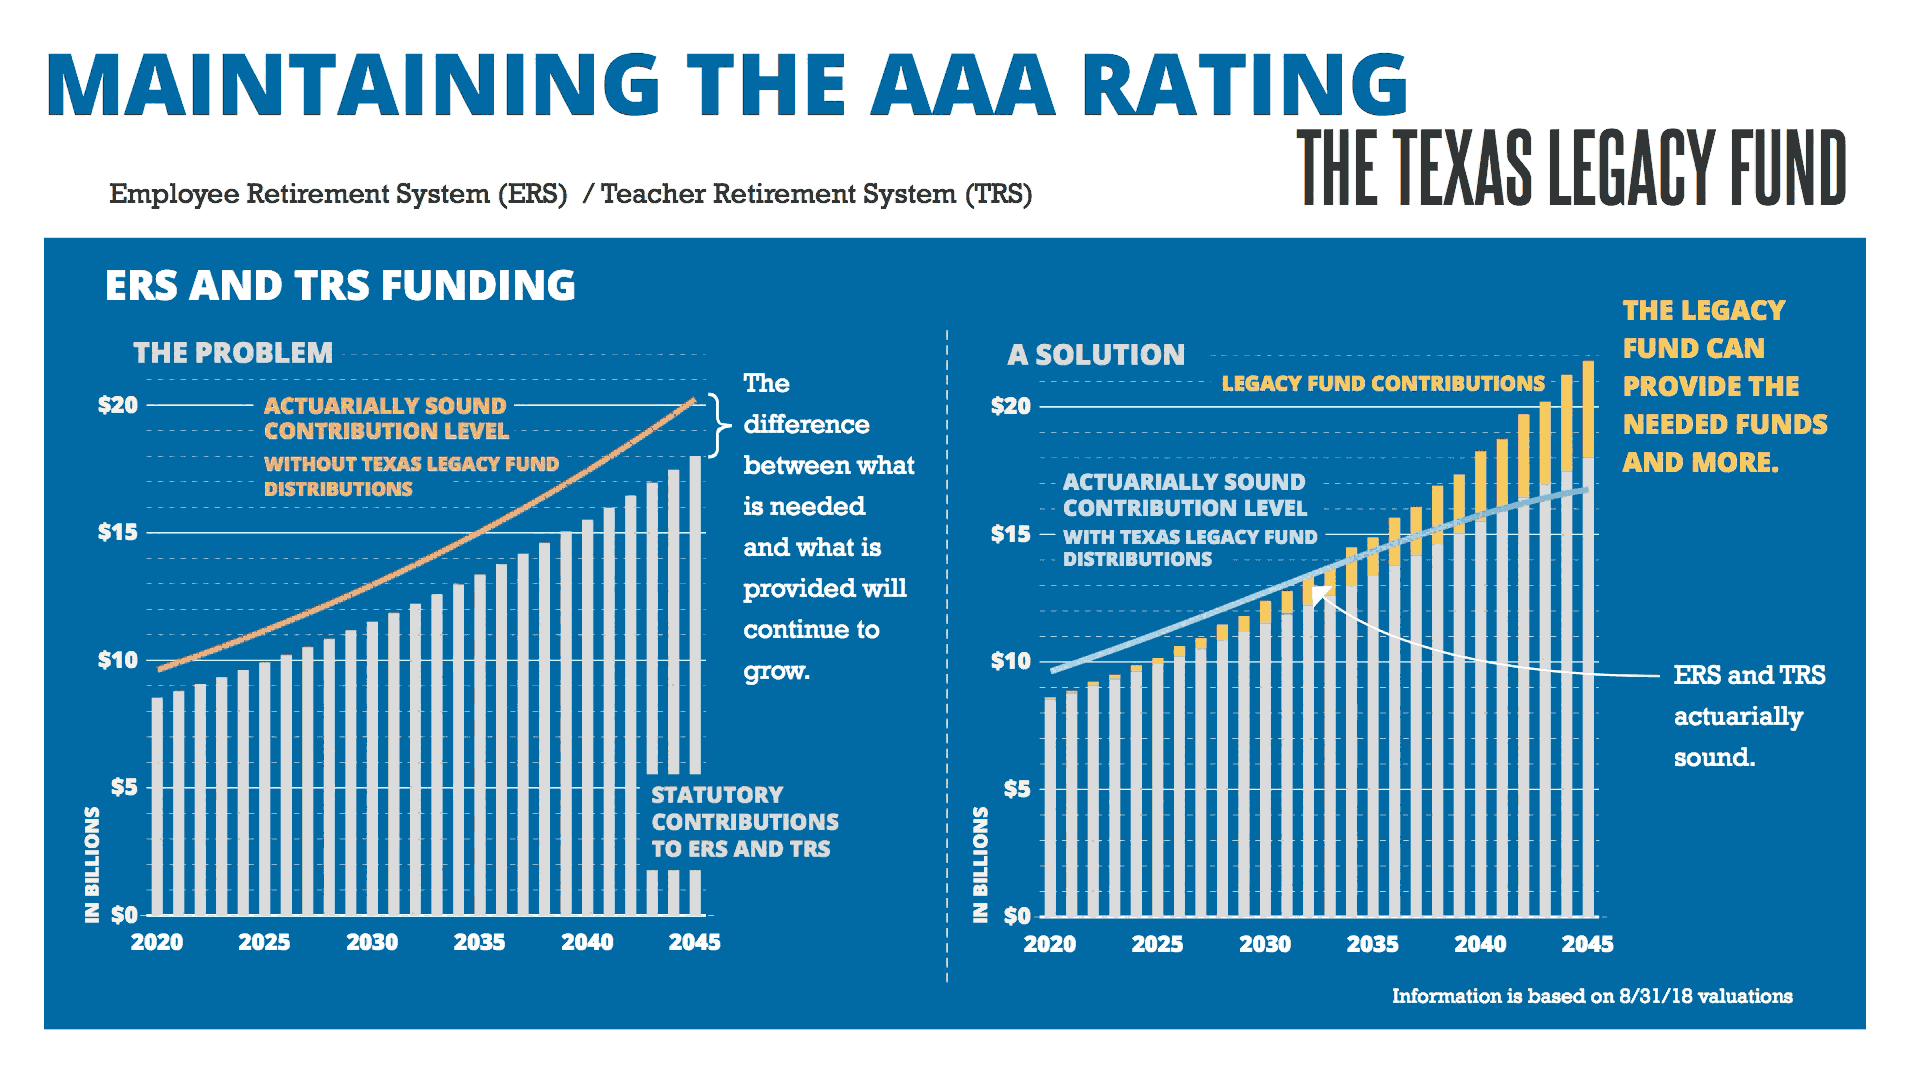 Maintaining the AAA Rating - page 2